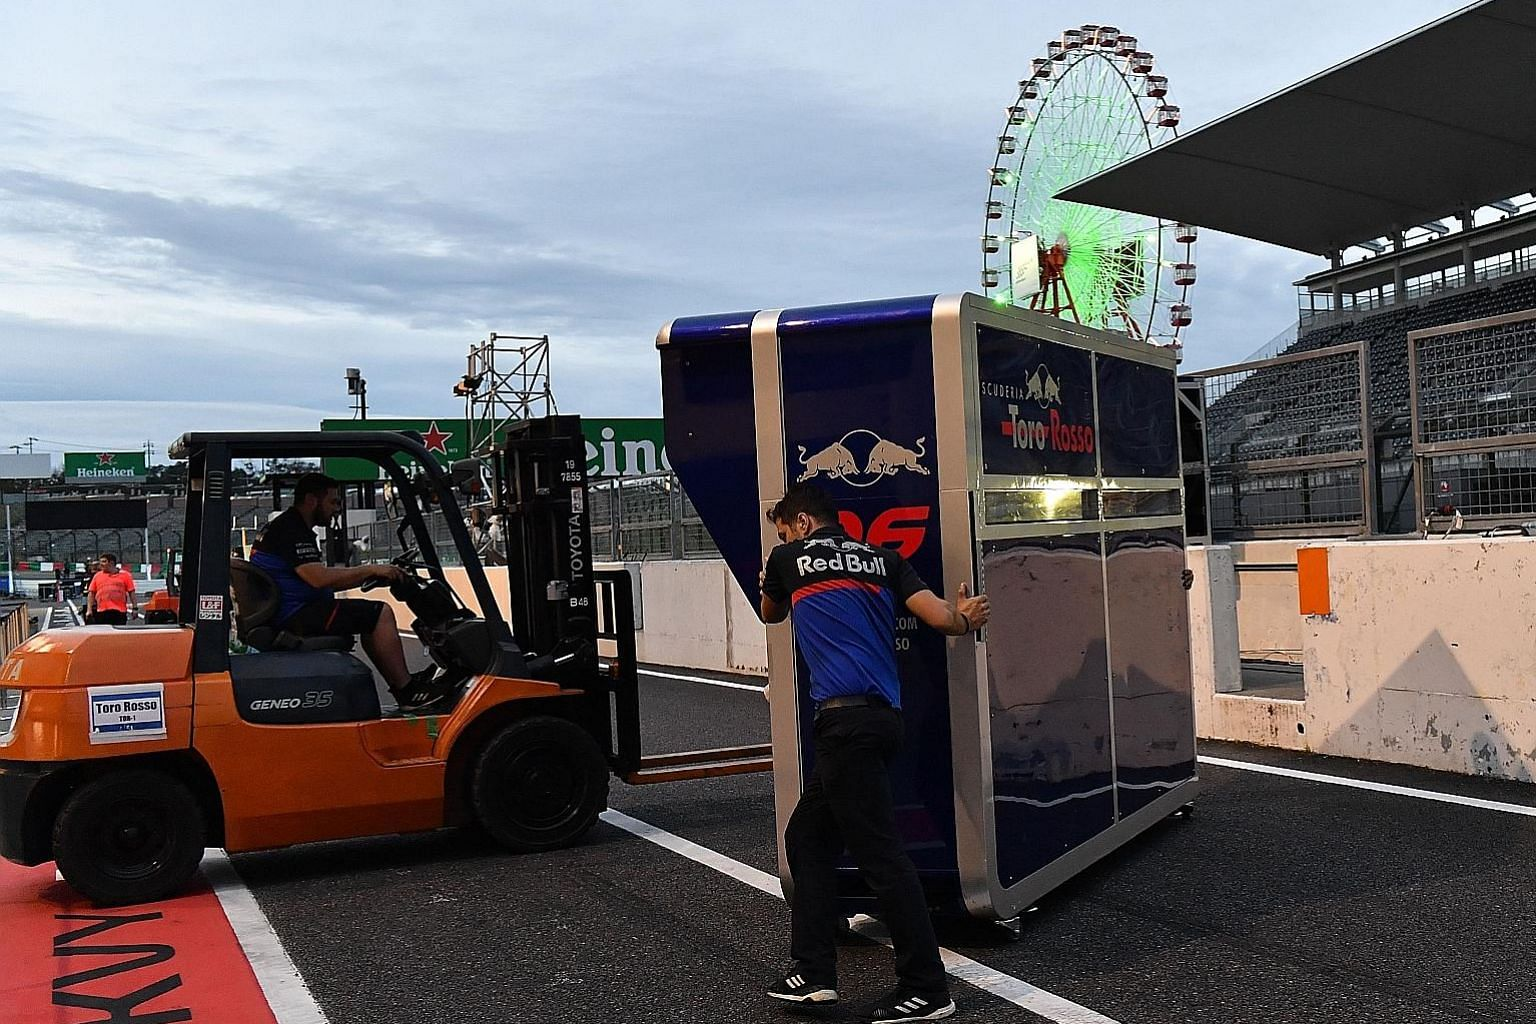 Toro Rosso mechanics removing the pit wall control desk soon after the two practice sessions for the Japanese Grand Prix at Suzuka circuit yesterday in preparation for Typhoon Hagibis' approach.